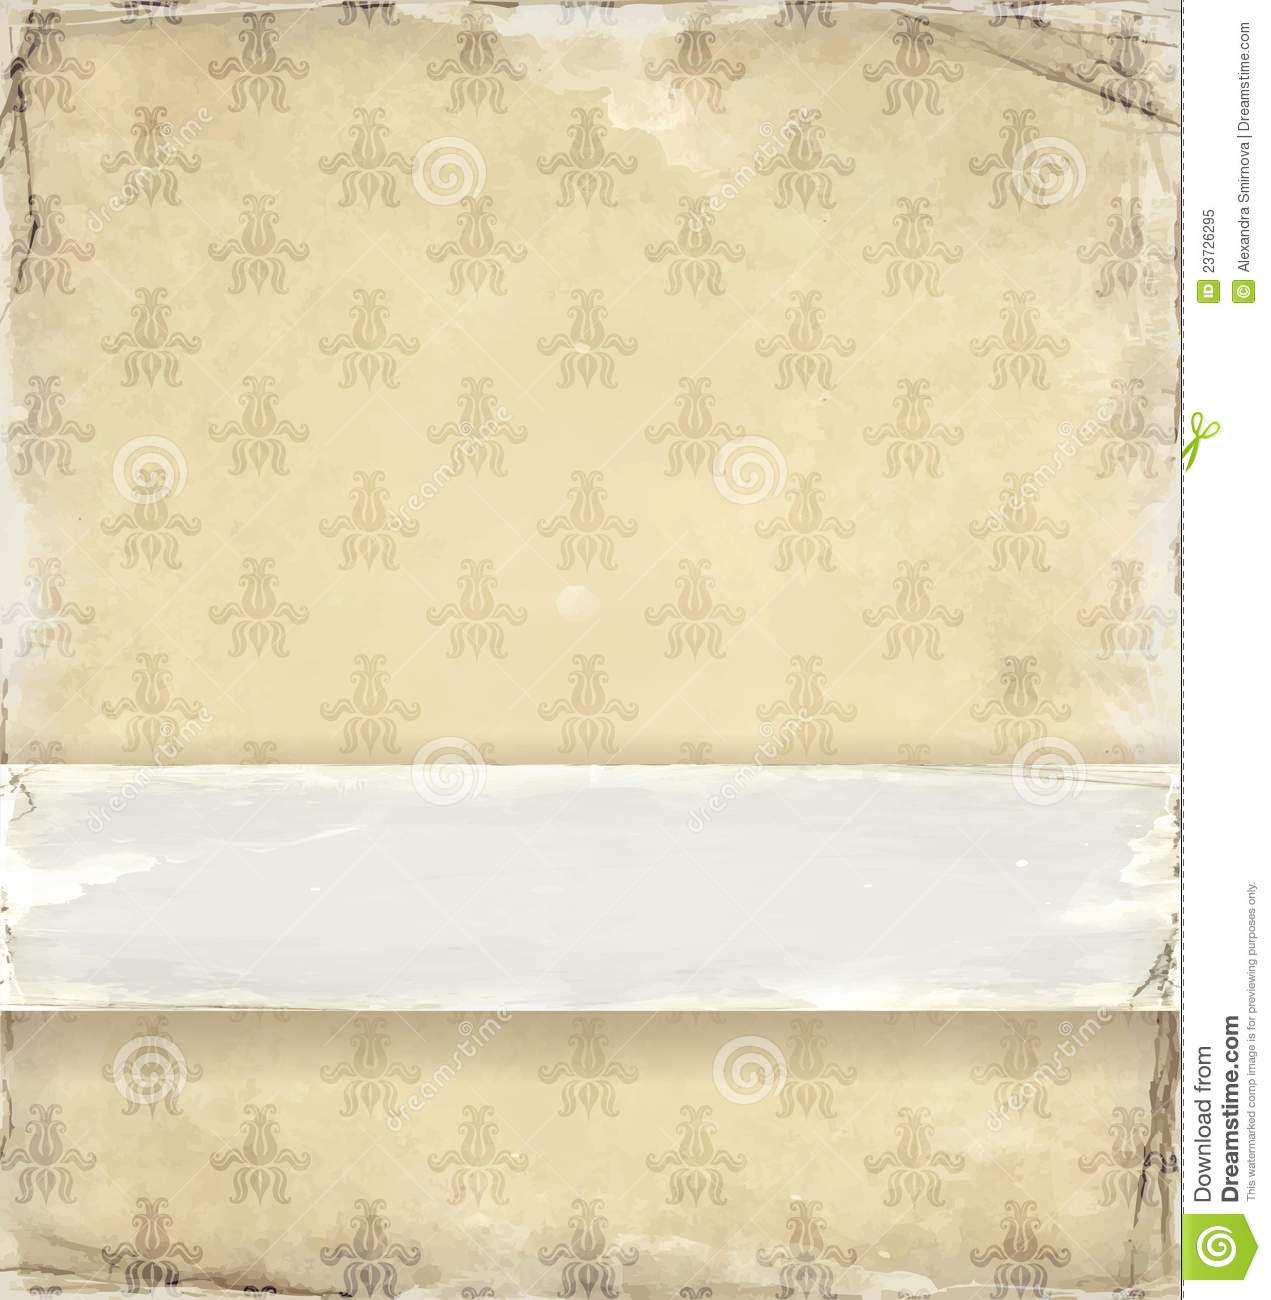 Old Fashioned Wallpaper Royalty Free Stock Photo